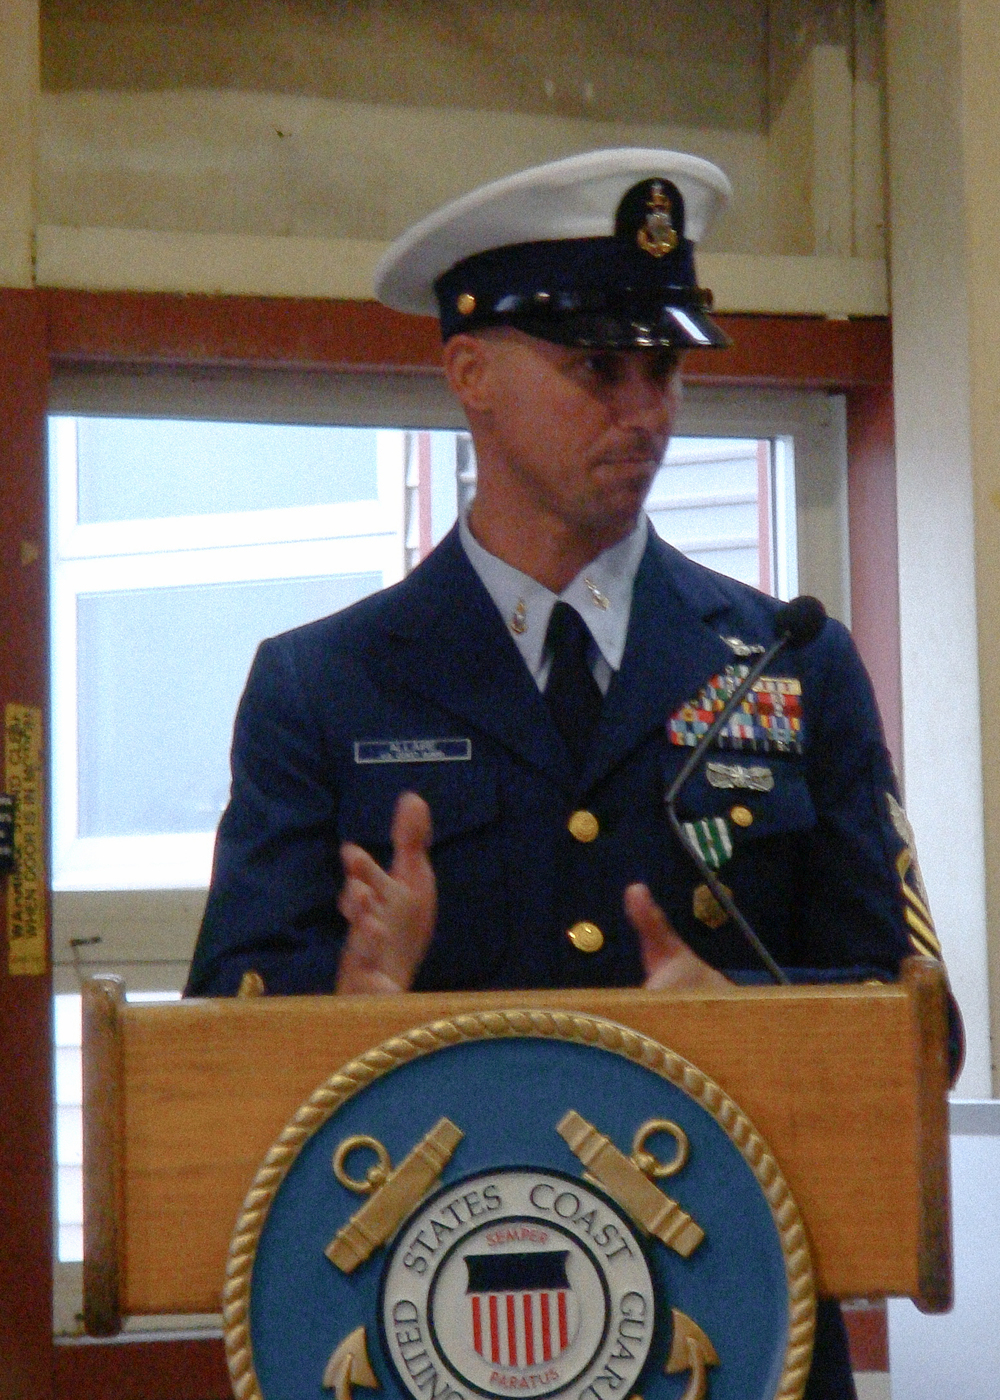 Retirement after 20 years in the uscg